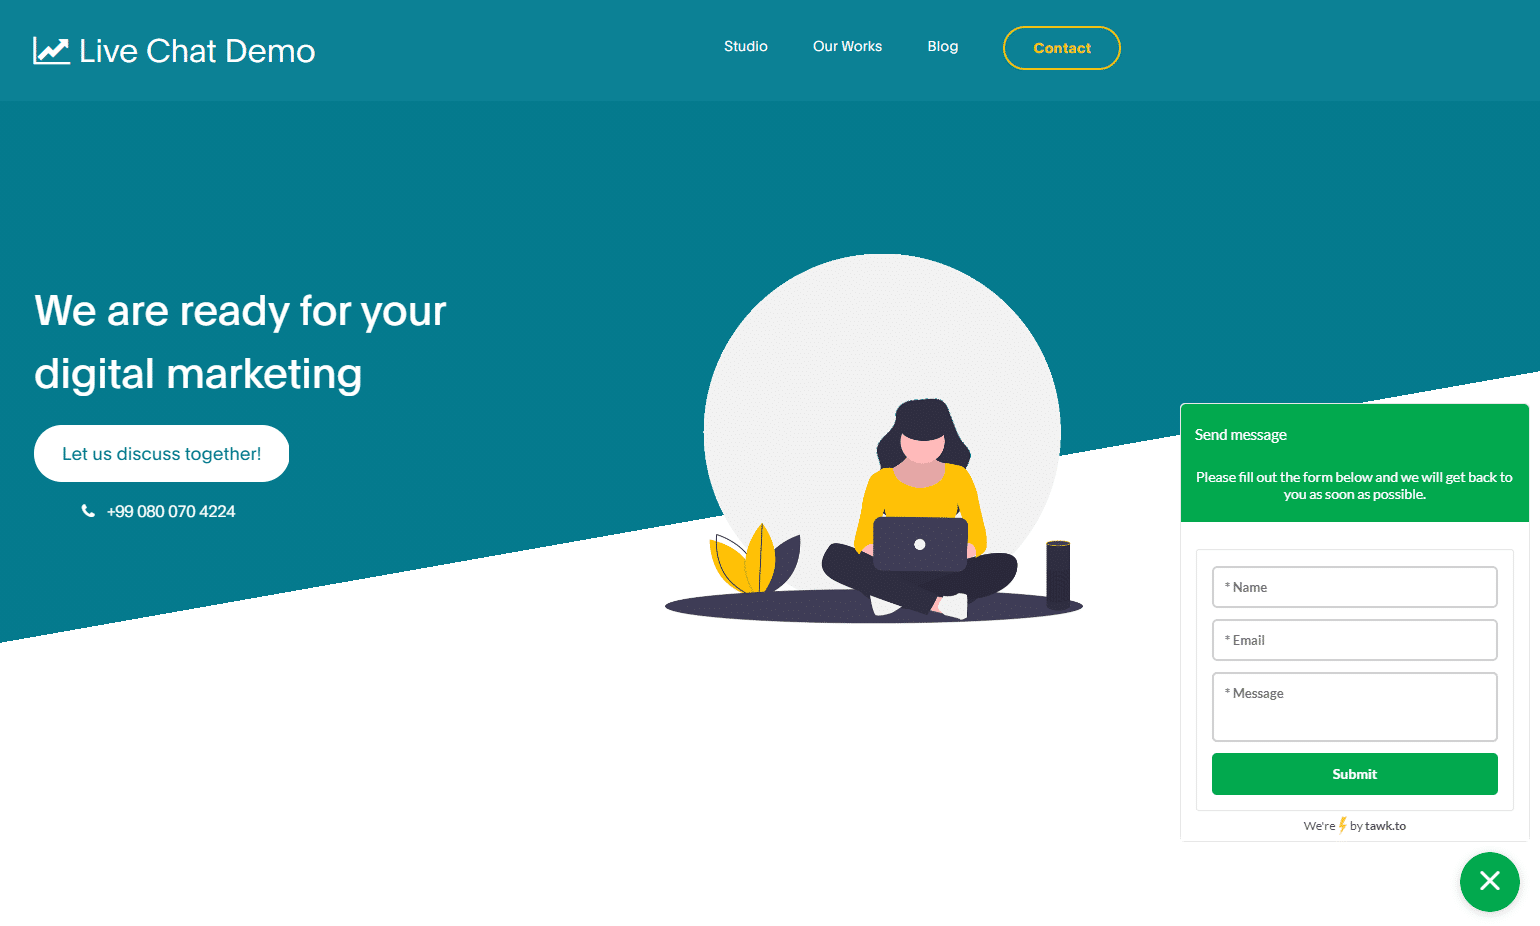 Tawk.to live chat interface